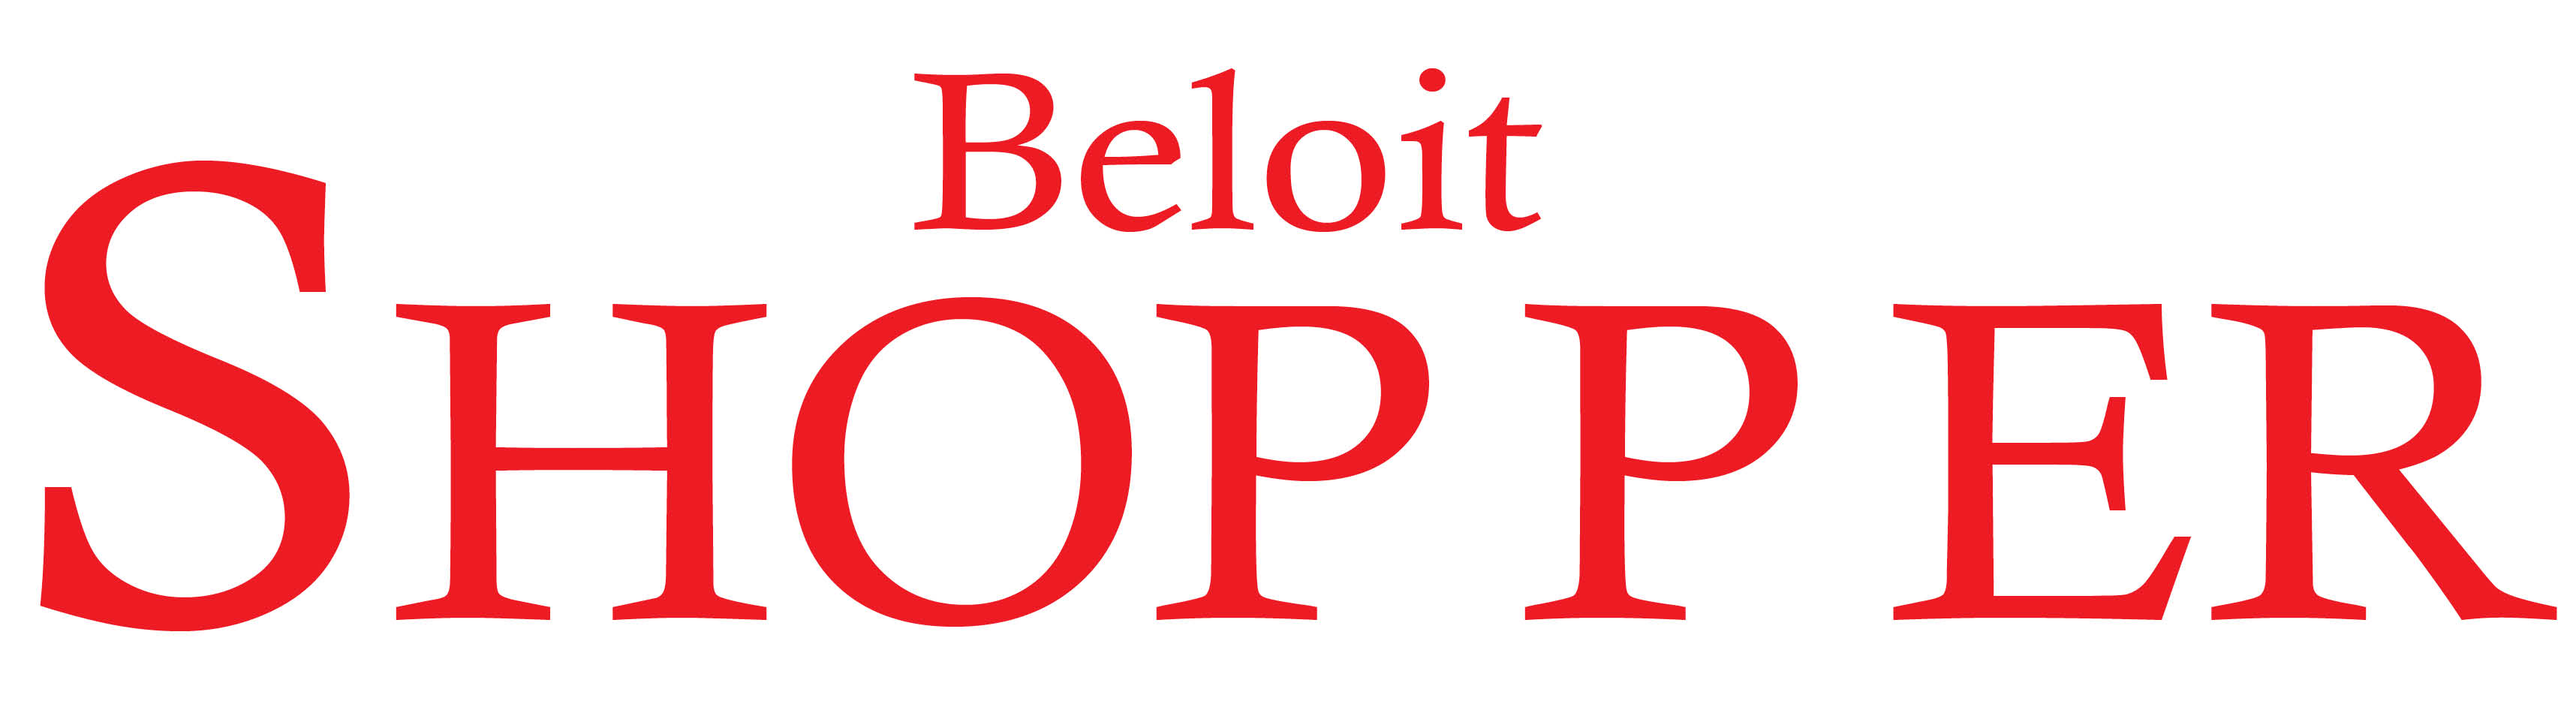 7/6/17 Beloit Shopper